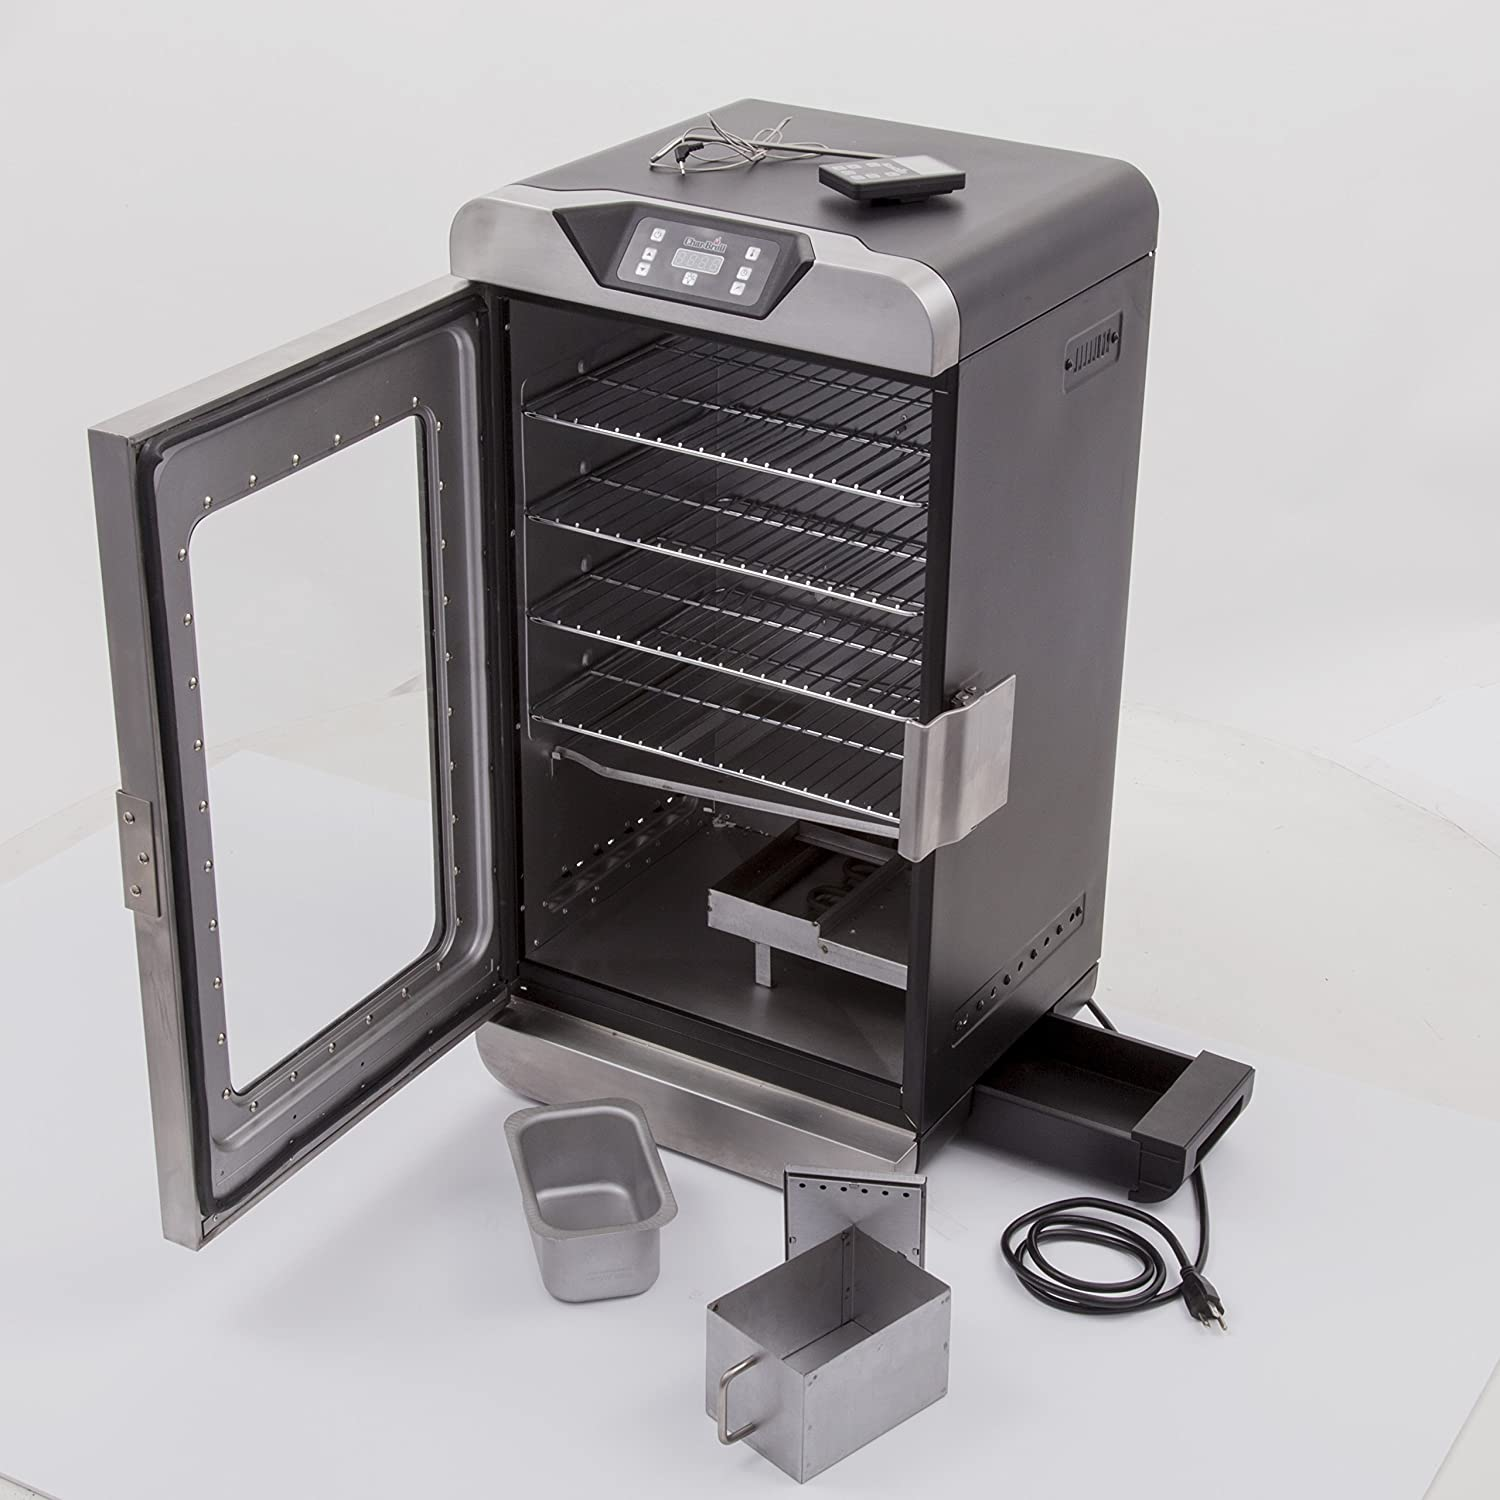 Char-Broil Electric Smoker parts